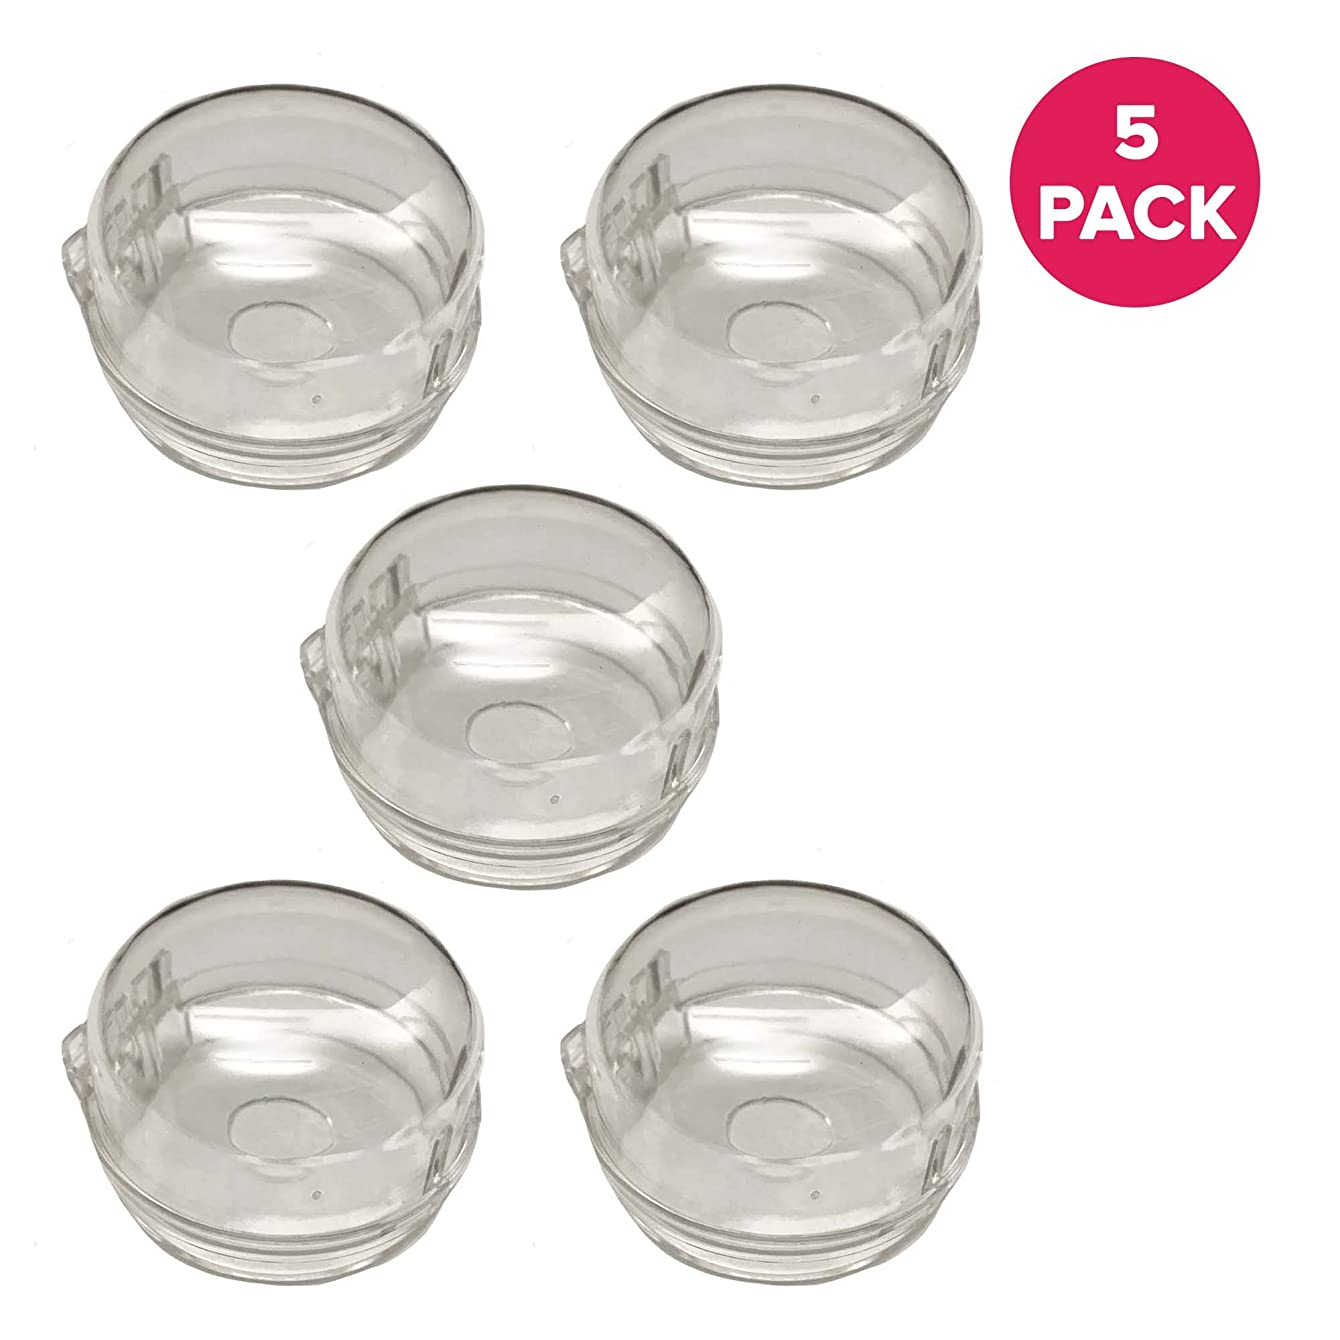 Think Crucial 5 Stove Burner Knobs, Clear